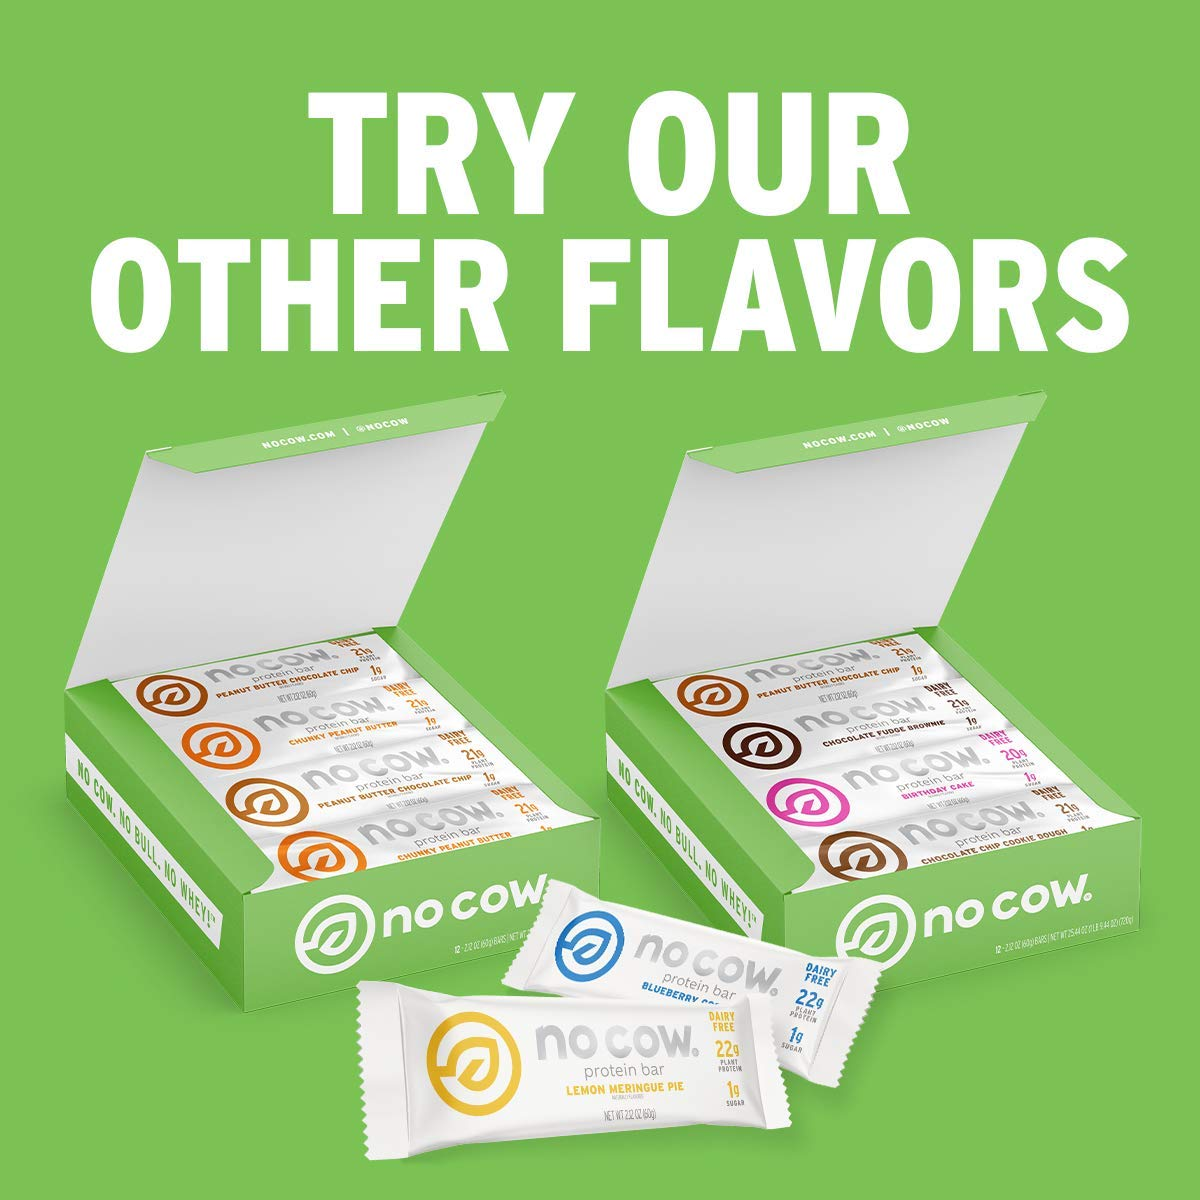 Amazon.com : No Cow Protein Bars, 12 Flavor Sampler Pack, 20g Plus Plant Based Vegan Protein, Keto Friendly, Low Sugar, Low Carb, Low Calorie, Gluten Free, Naturally Sweetened, Dairy Free, Non GMO,